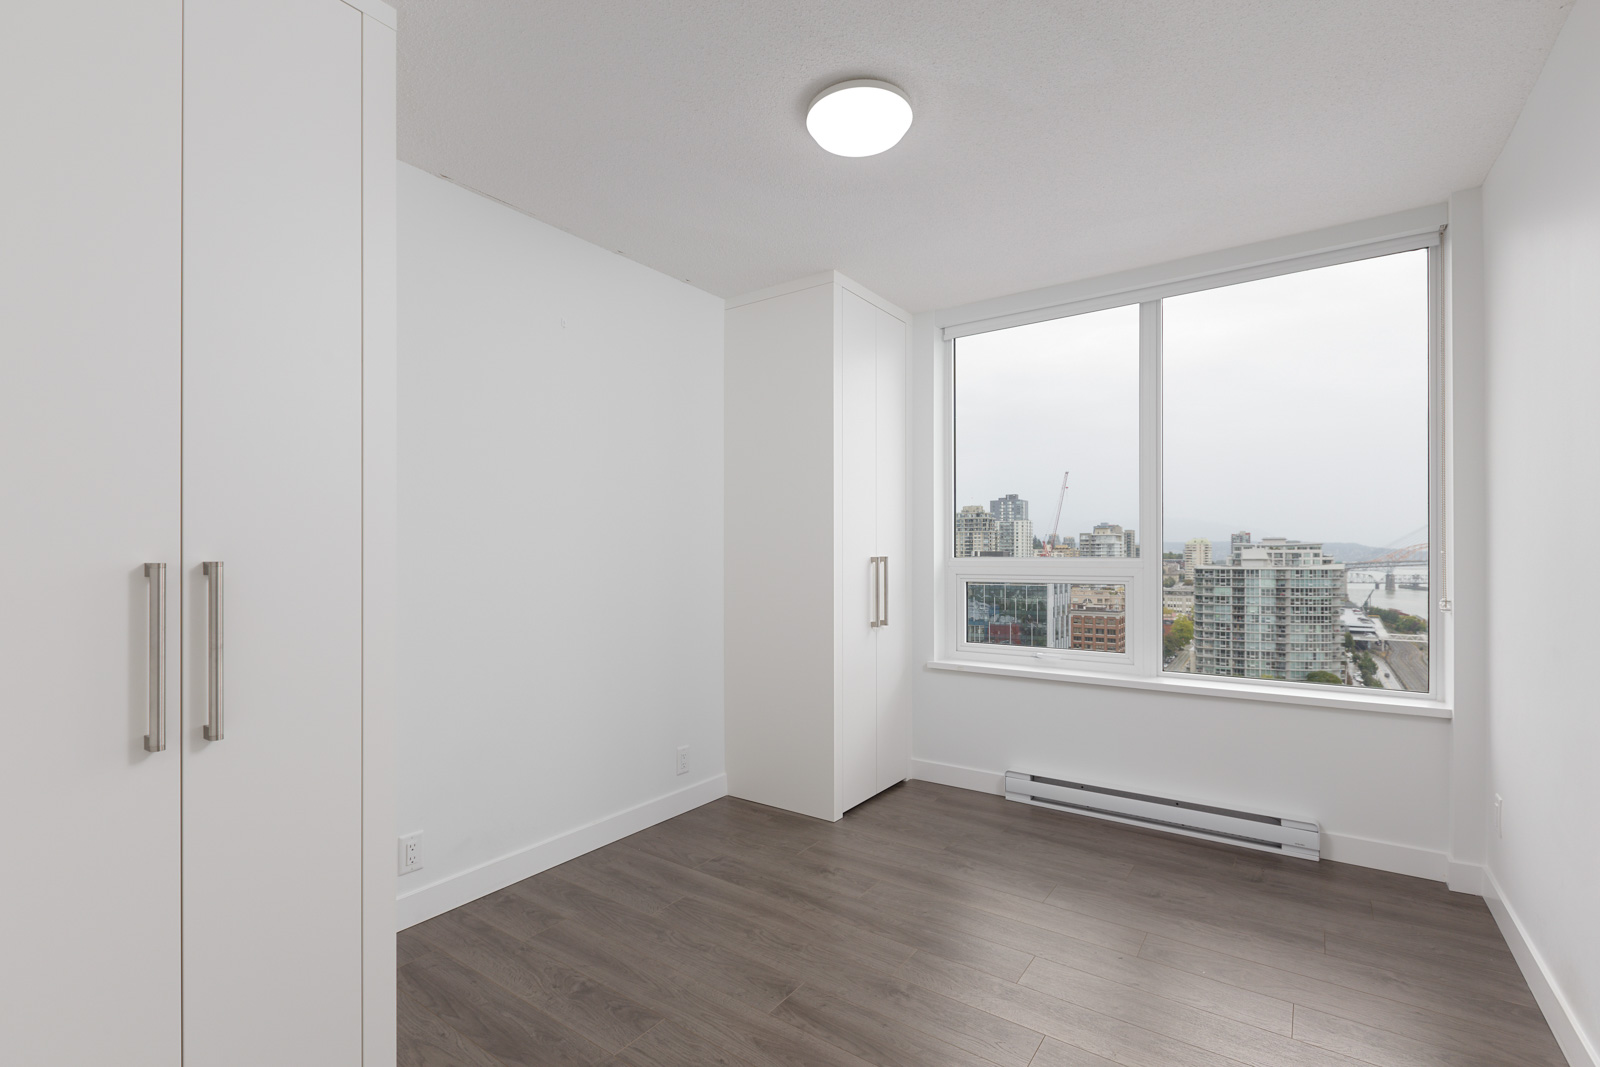 bright bedroom in a condo located near the rived in new Westminster with a view